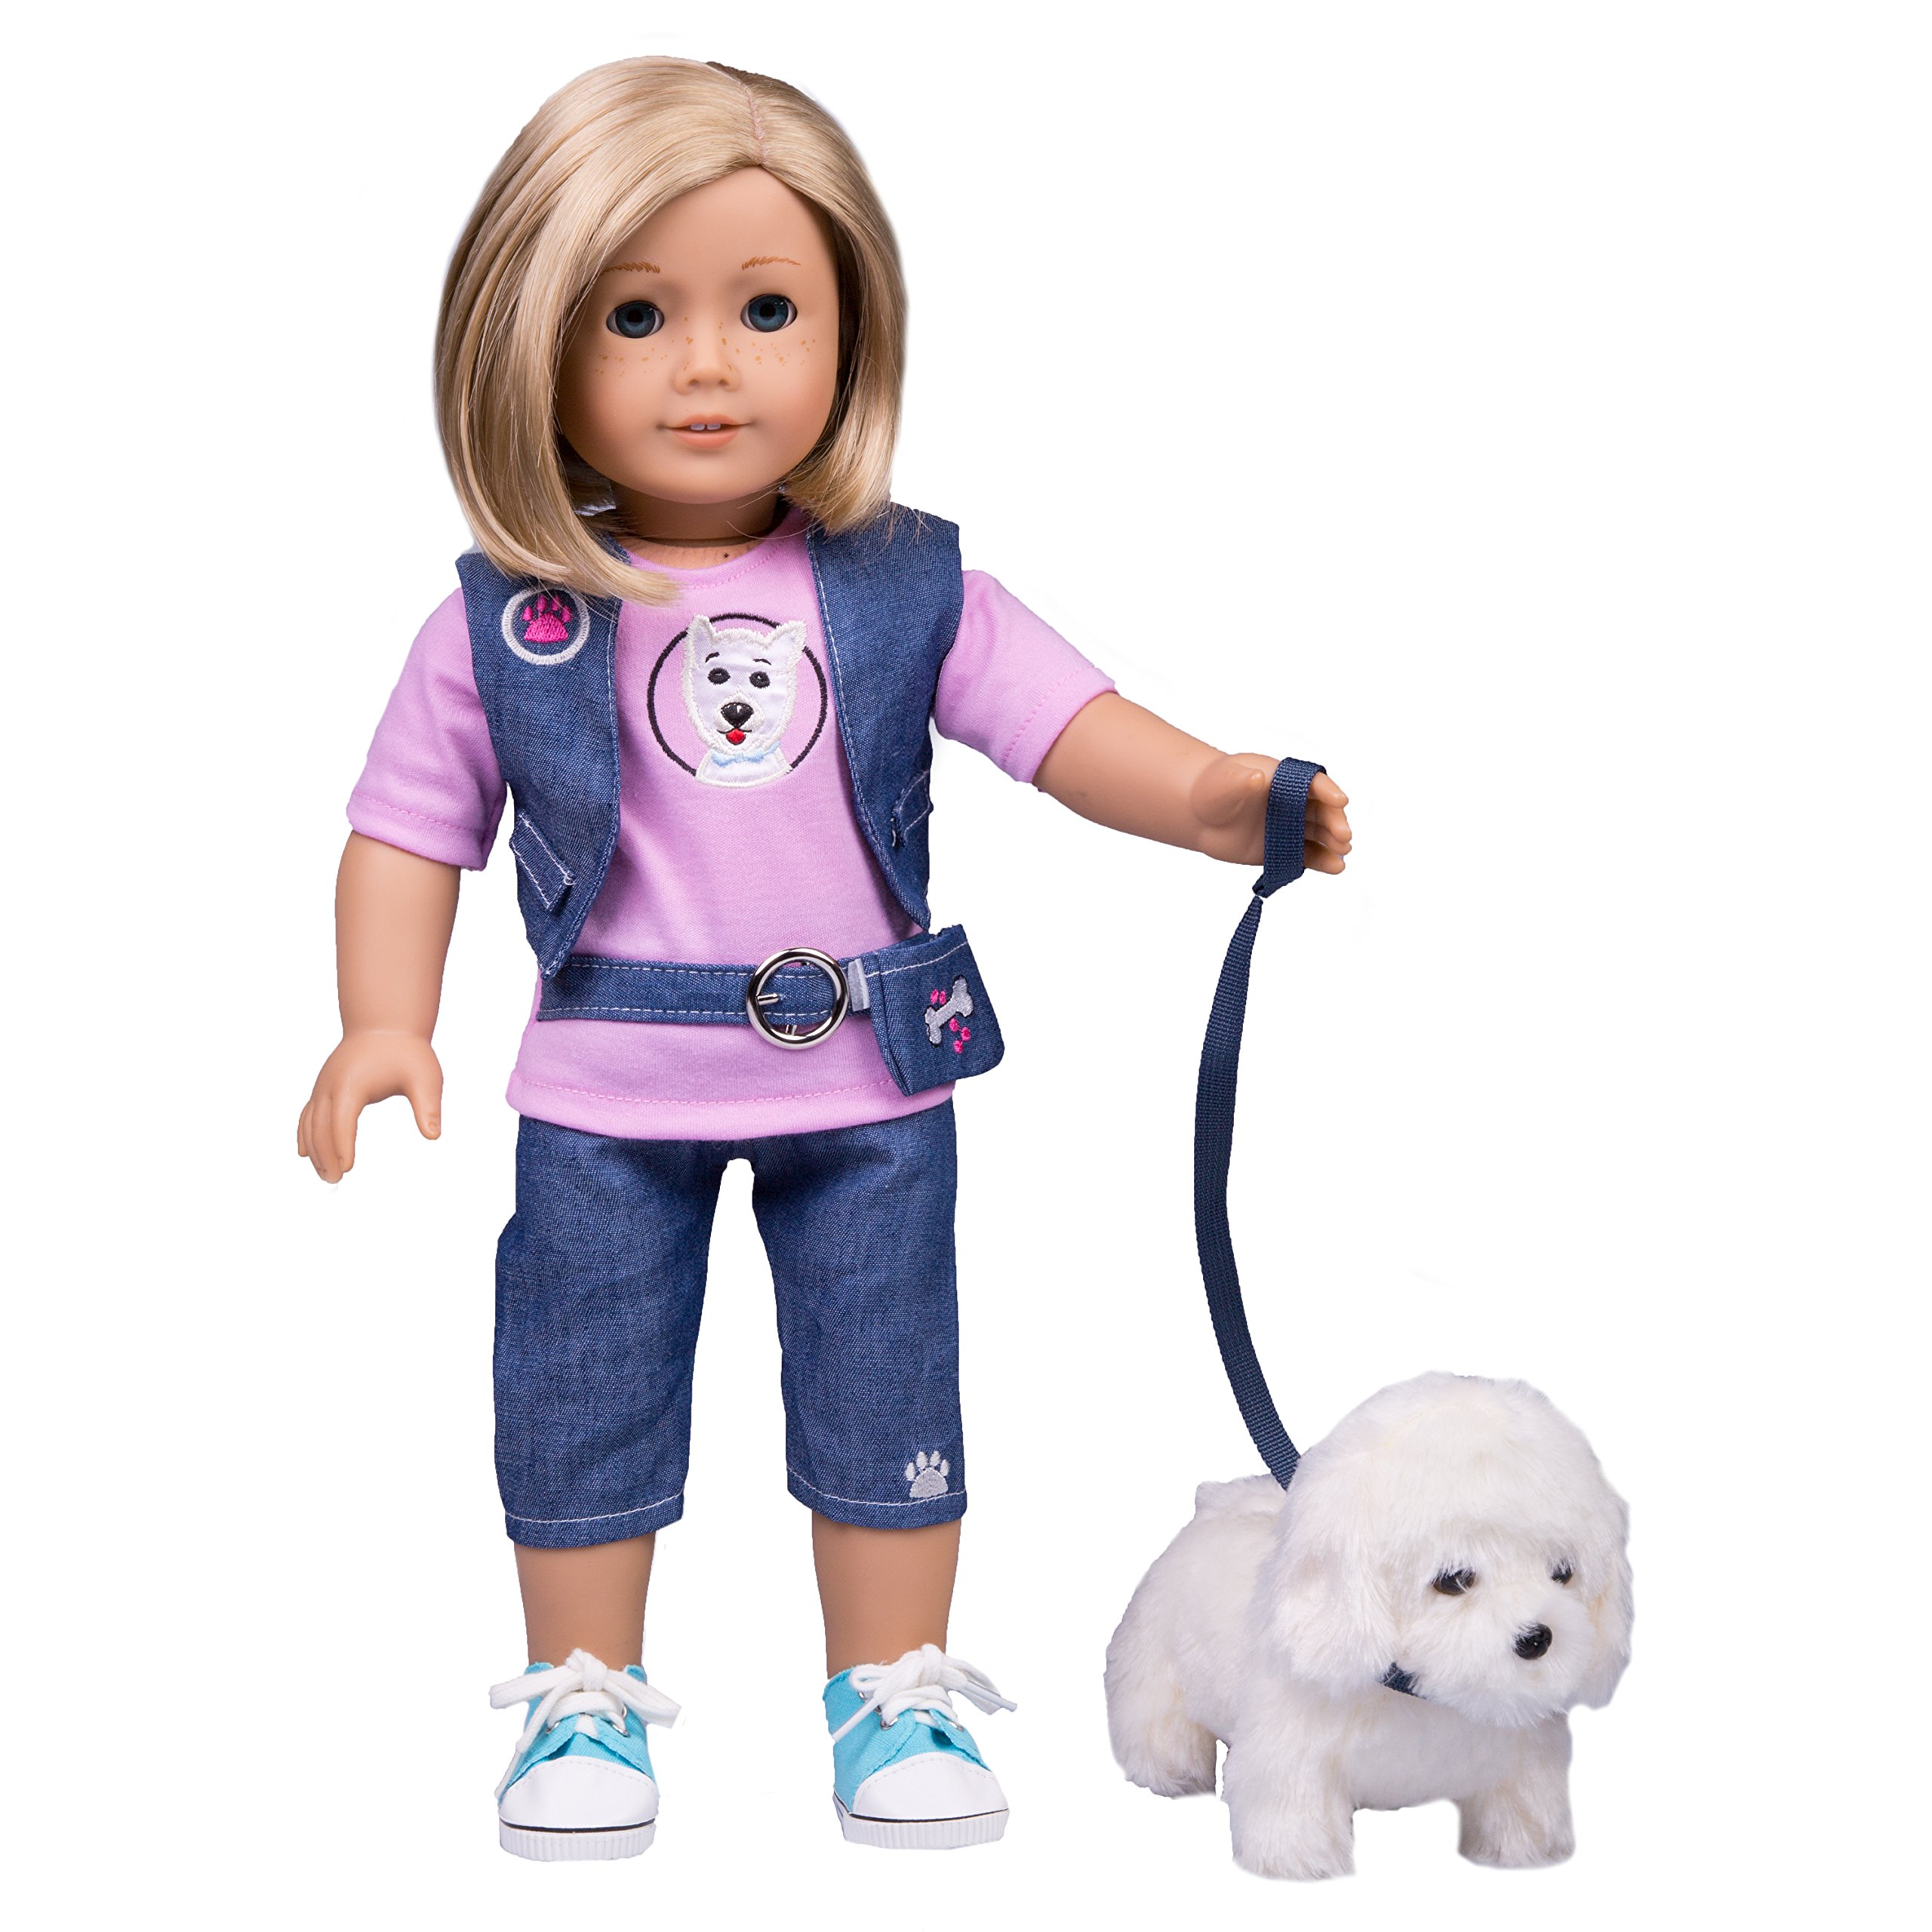 Dress Along Dolly Dog Walker Outfit American Girl 18'' Dolls (Includes T Shirt, Vest, Pants, Belt, Shoes, Dog Leash)